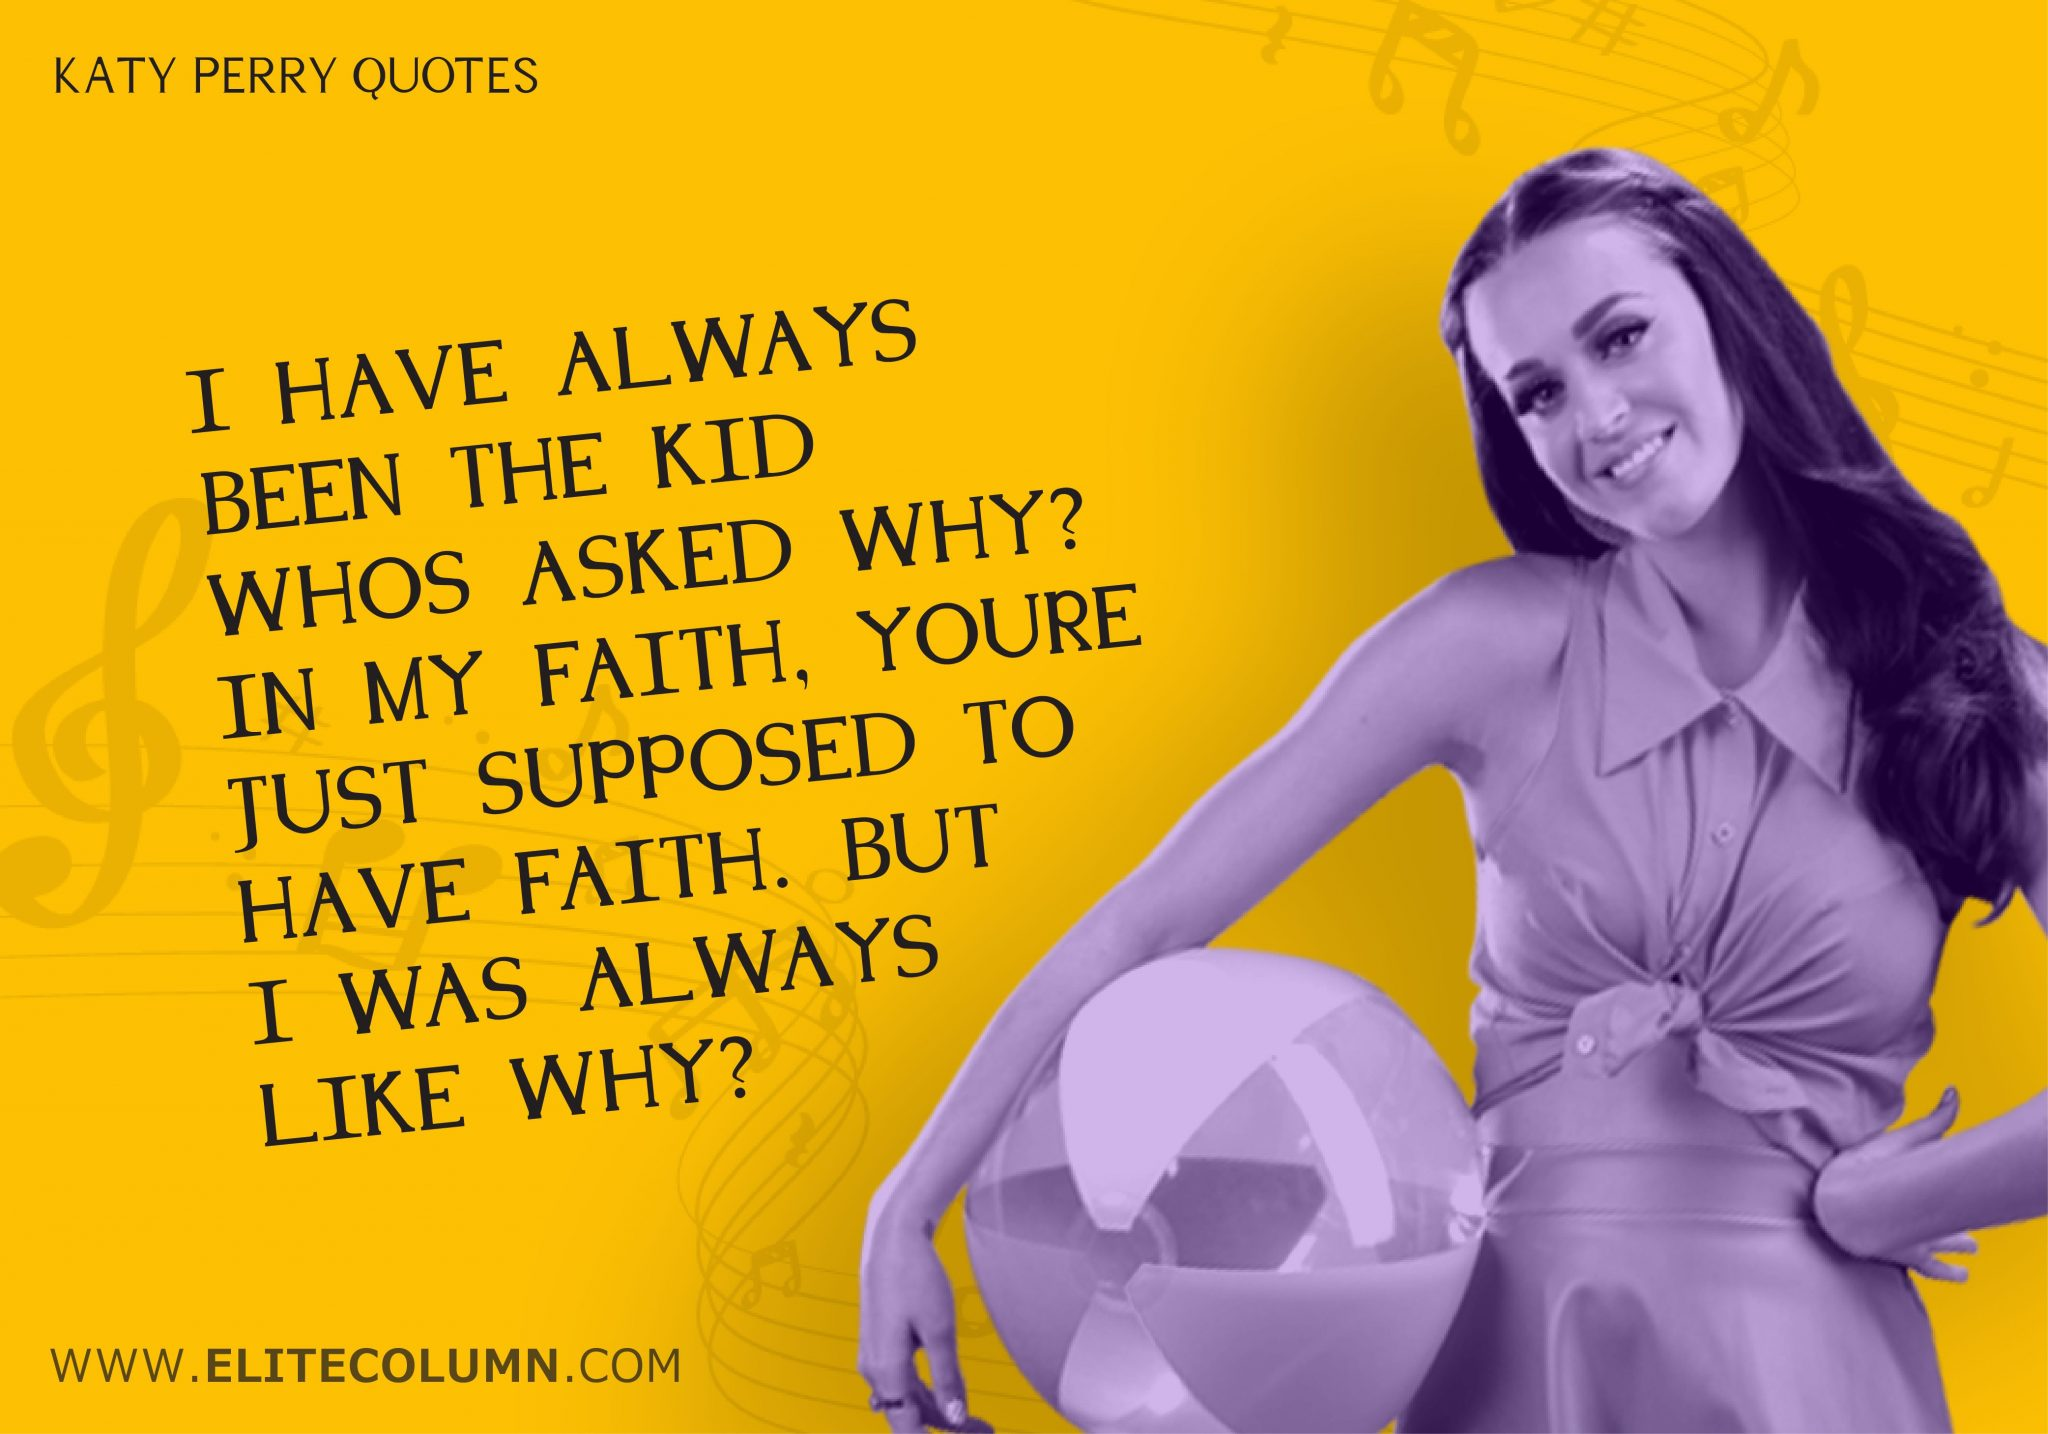 Katy Perry Quotes (3)